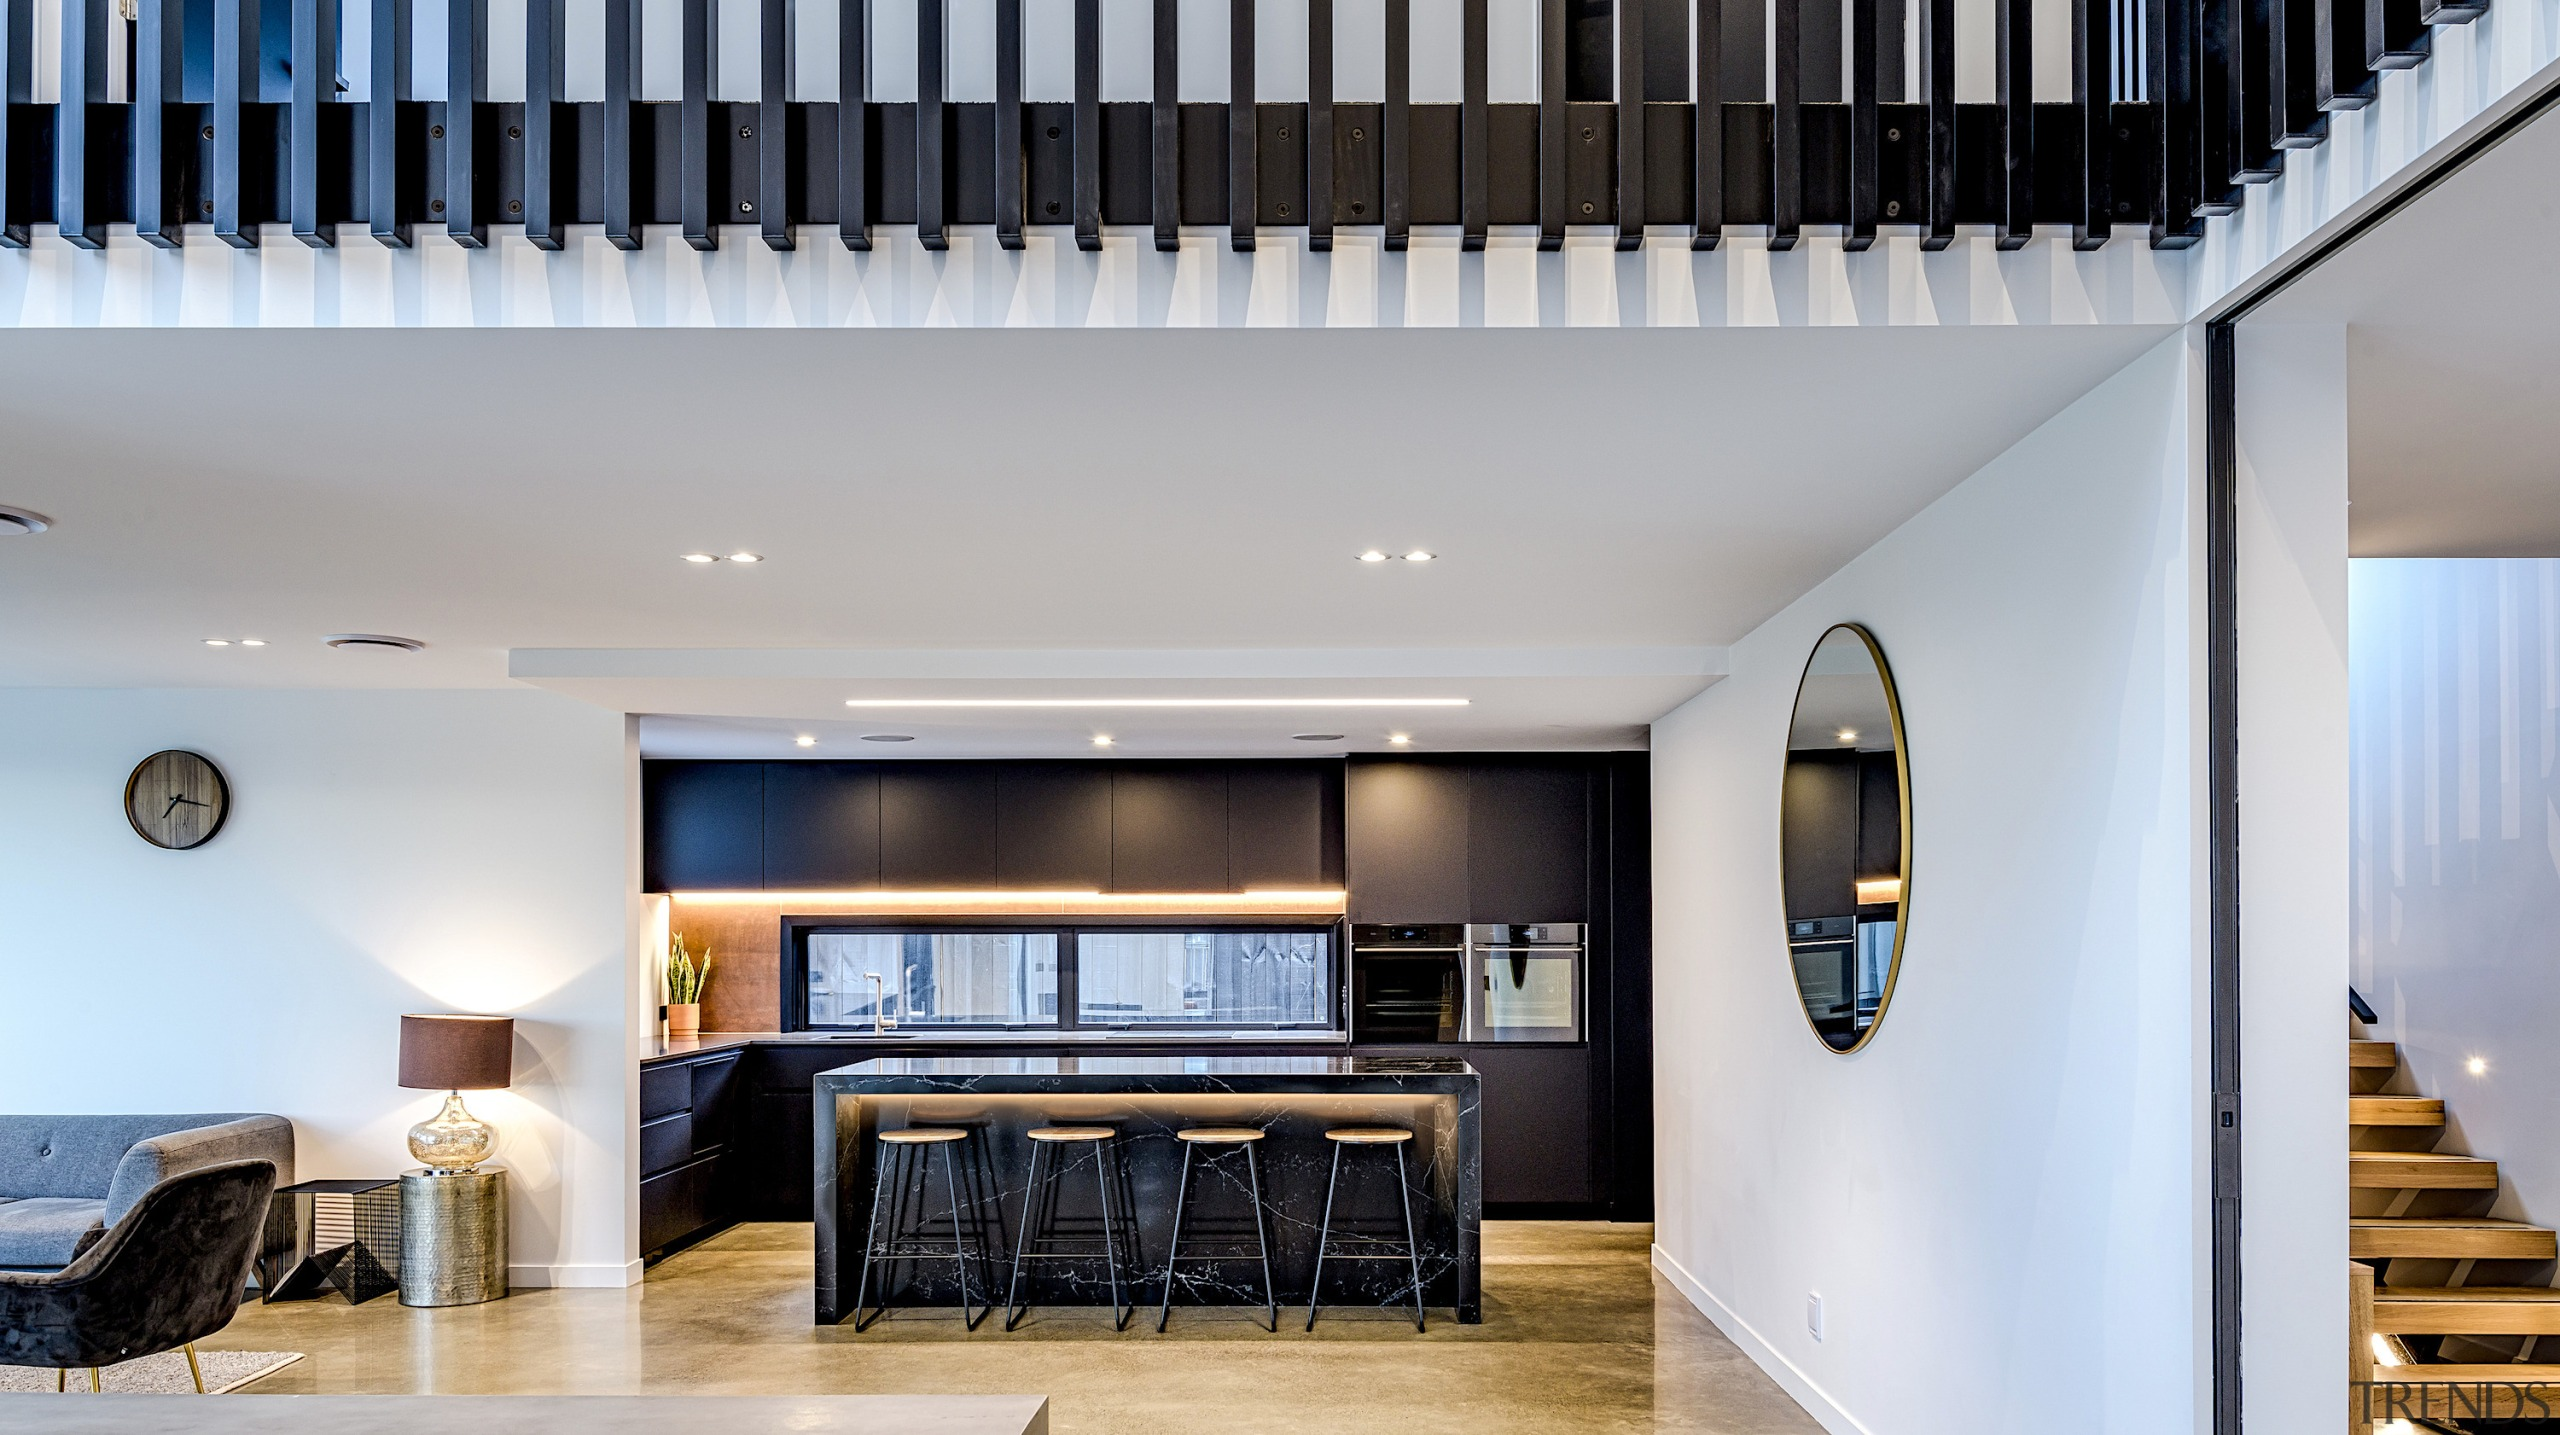 This kitchen had to achieve balance with a architecture, building, ceiling, floor, flooring, furniture, home, house, interior design, living room, loft, property, real estate, room, technology, wood, wood flooring, gray